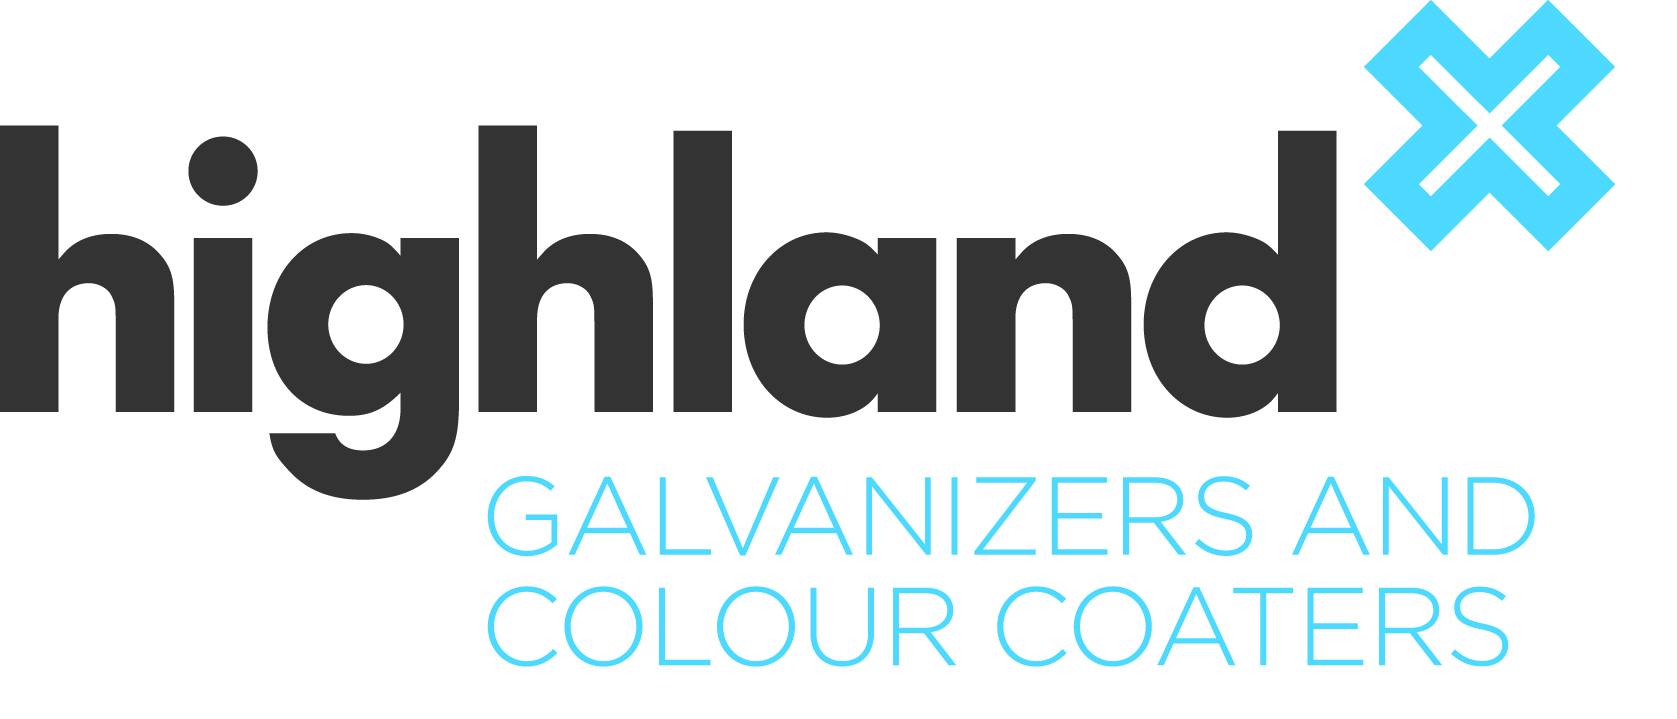 Highland Colour Coaters Ltd